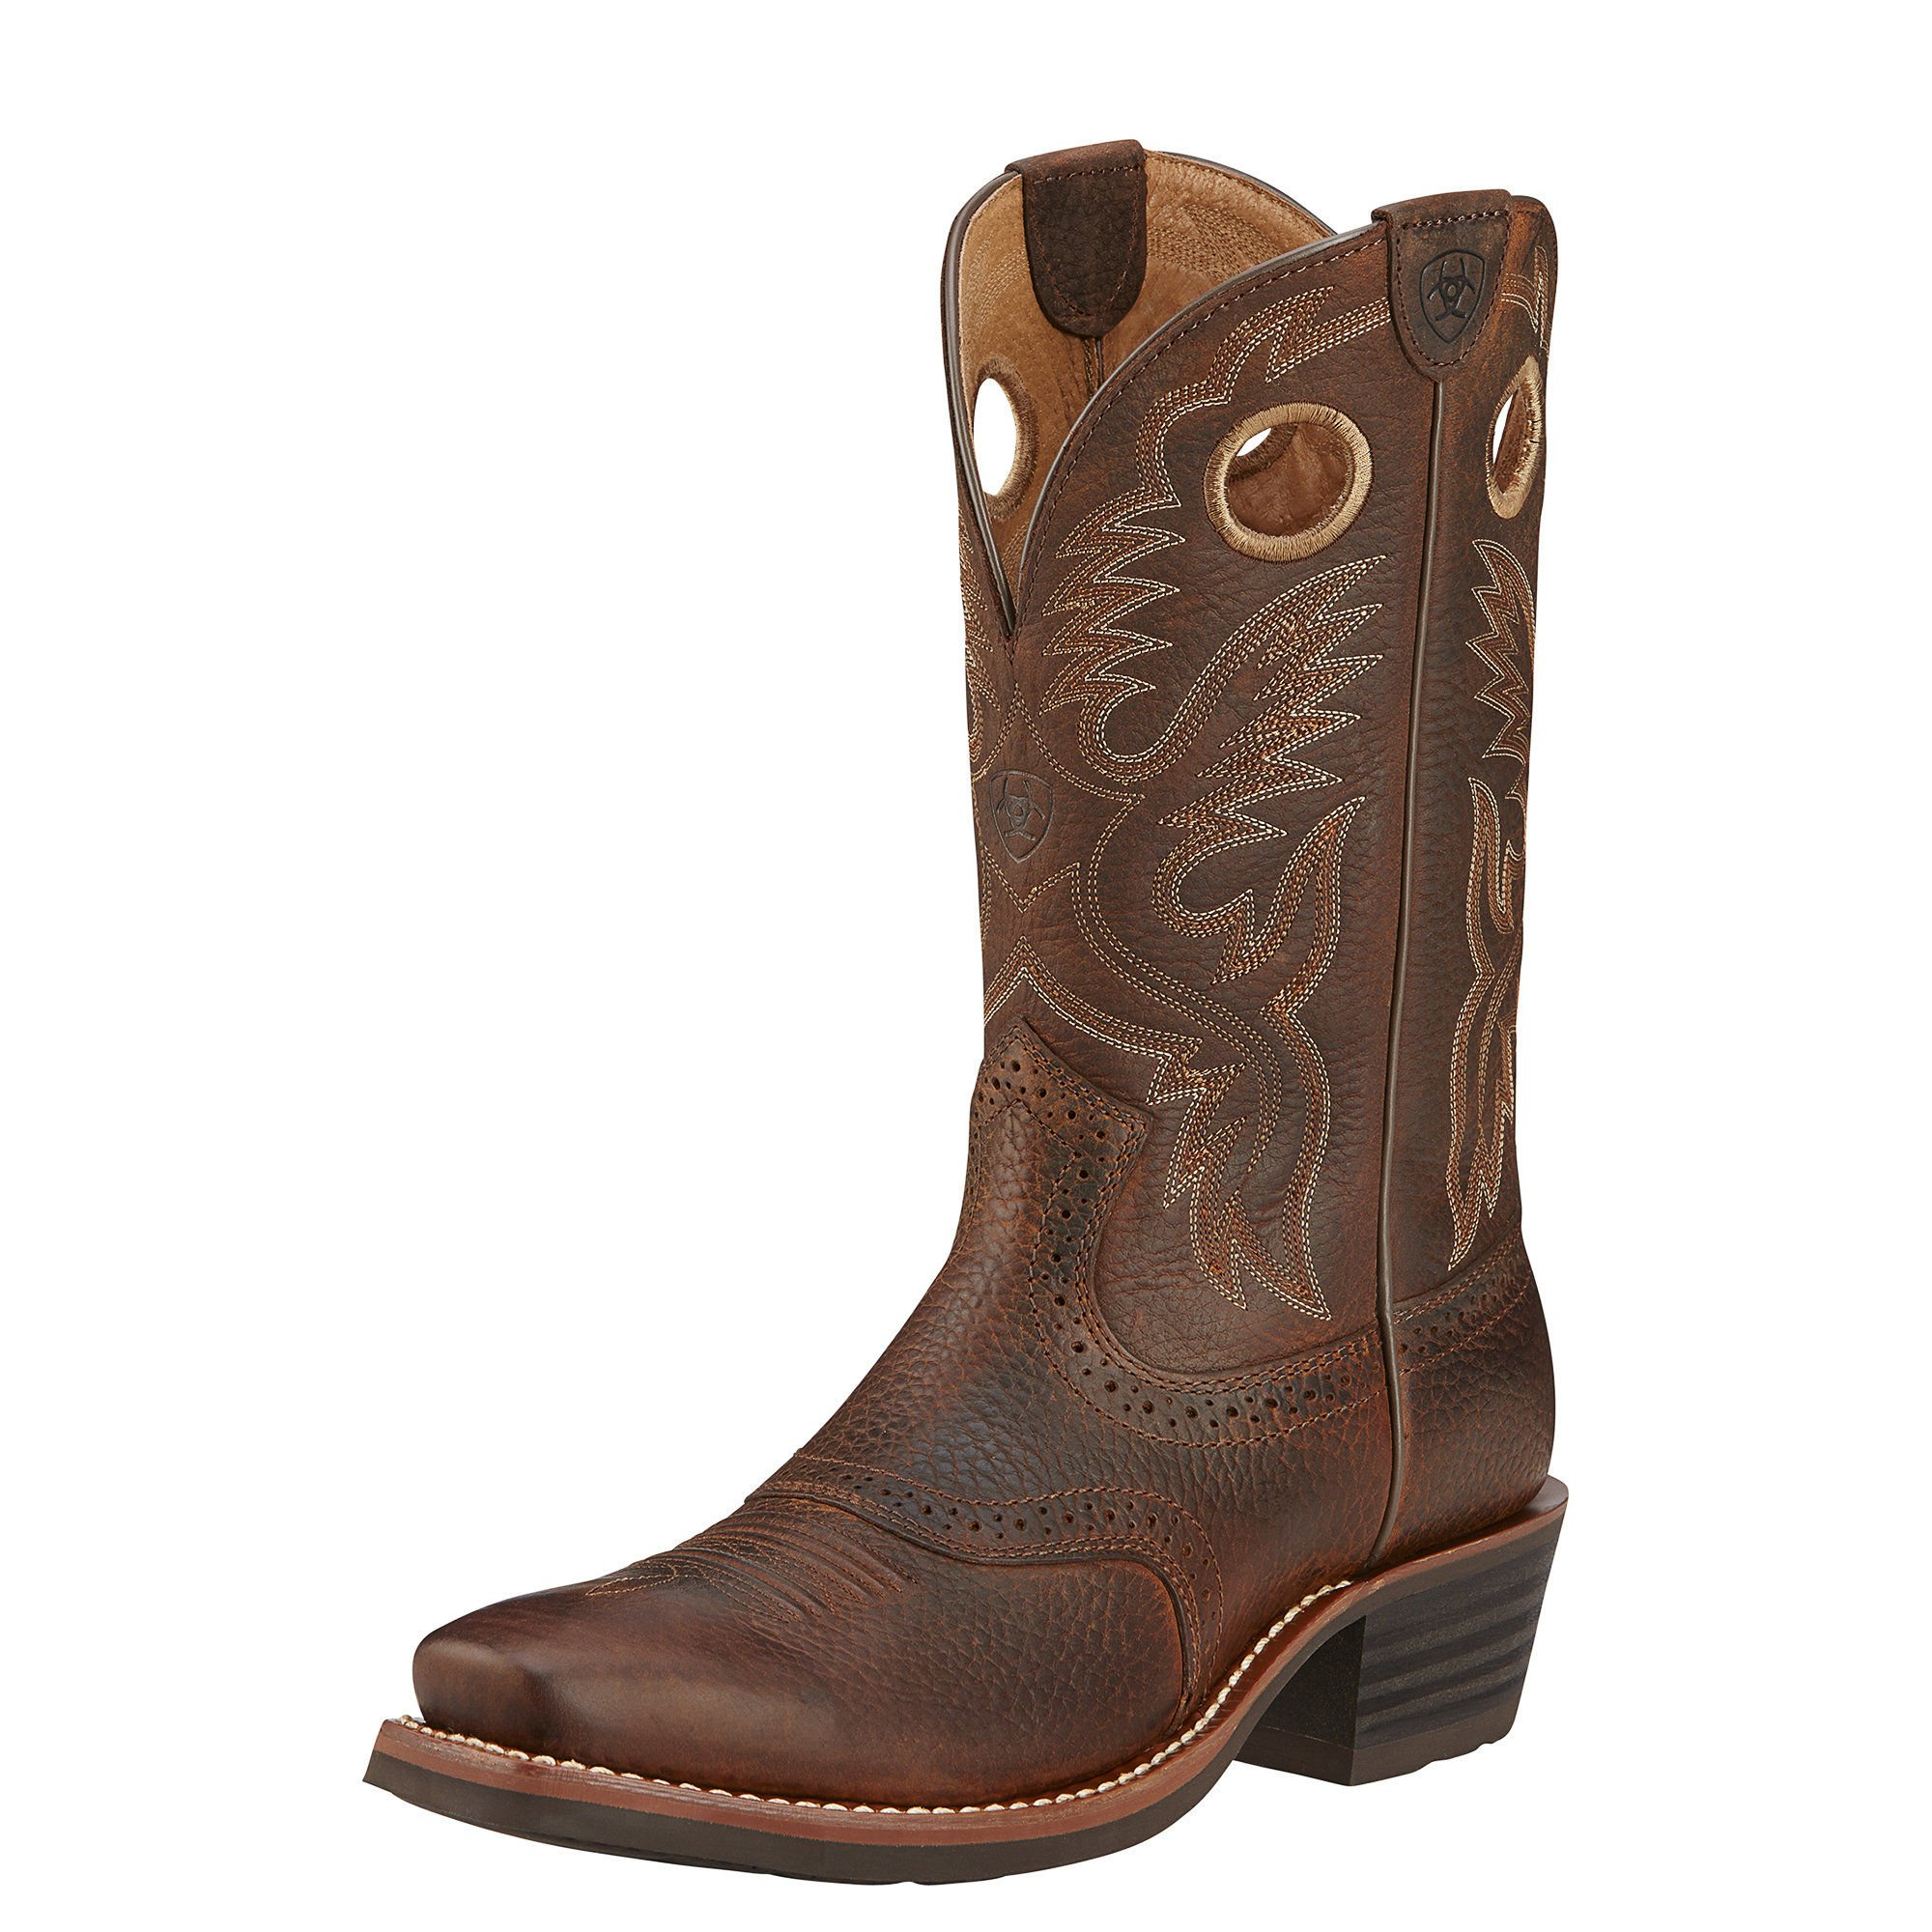 Ariat Men's Heritage Roughstock Western Cowboy Boot, Brown Oiled Rowdy, 11.5D